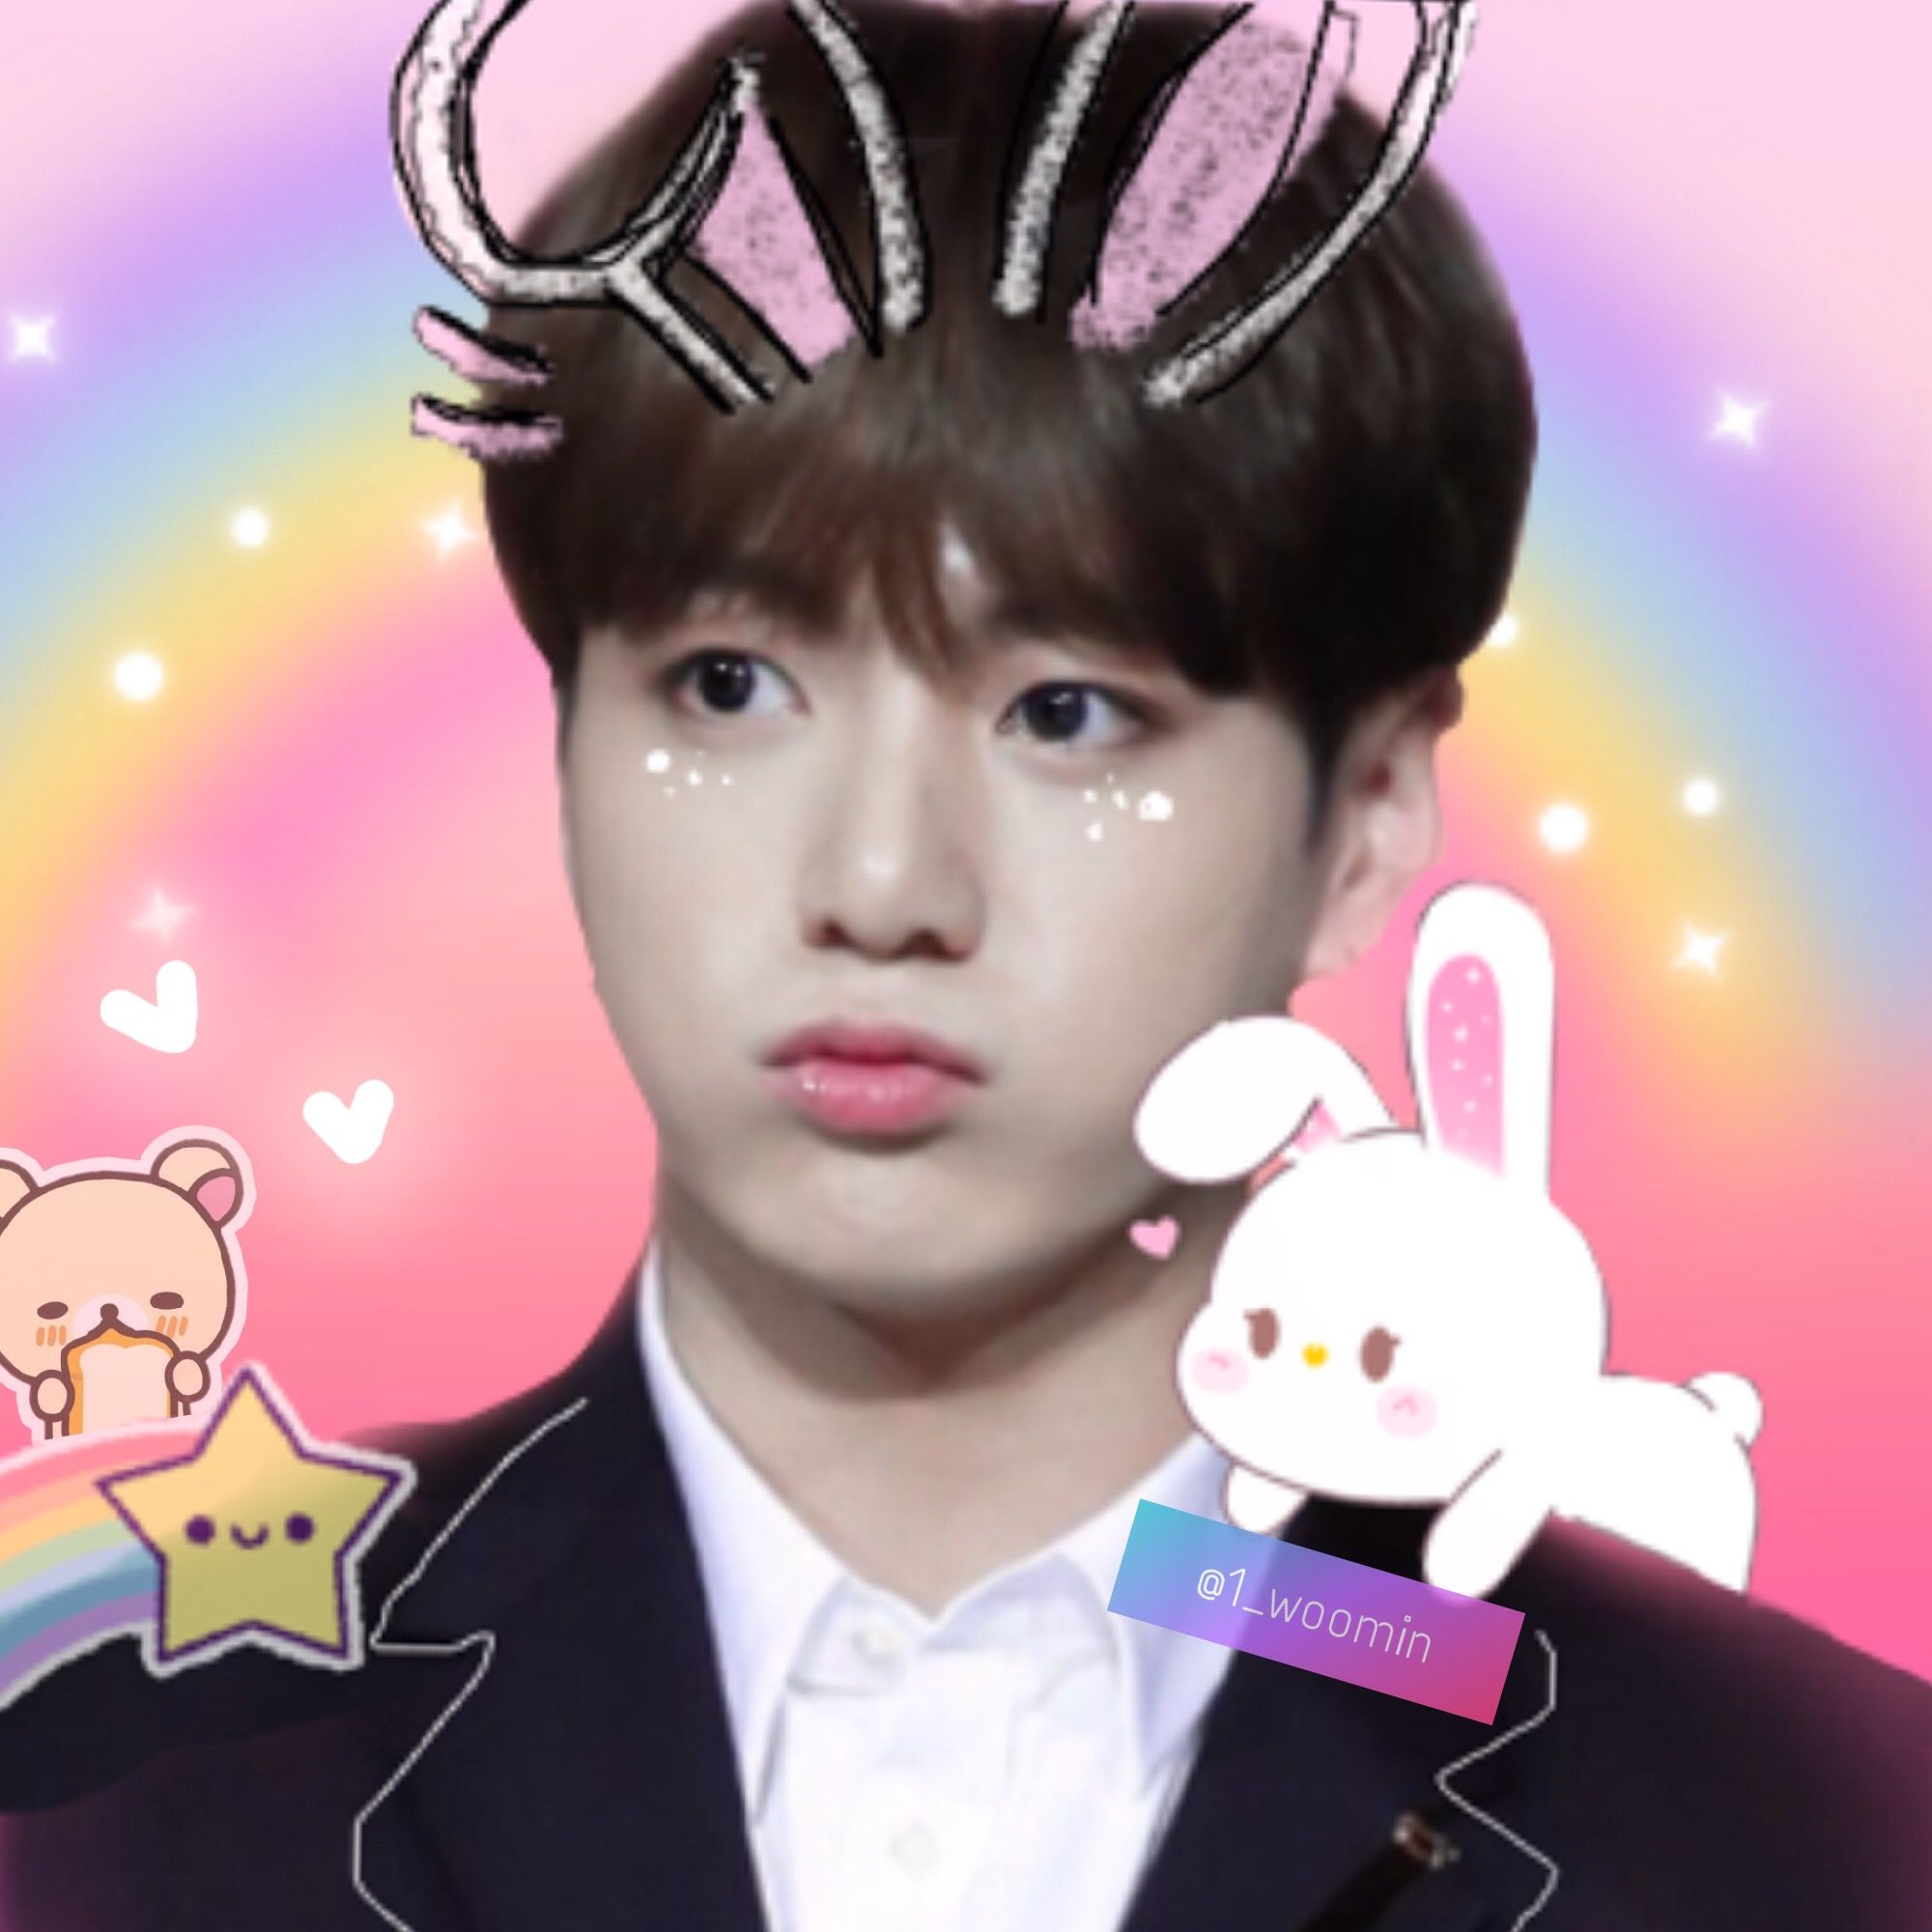 20 New For Bunny Jungkook Cute Pics Lee Dii